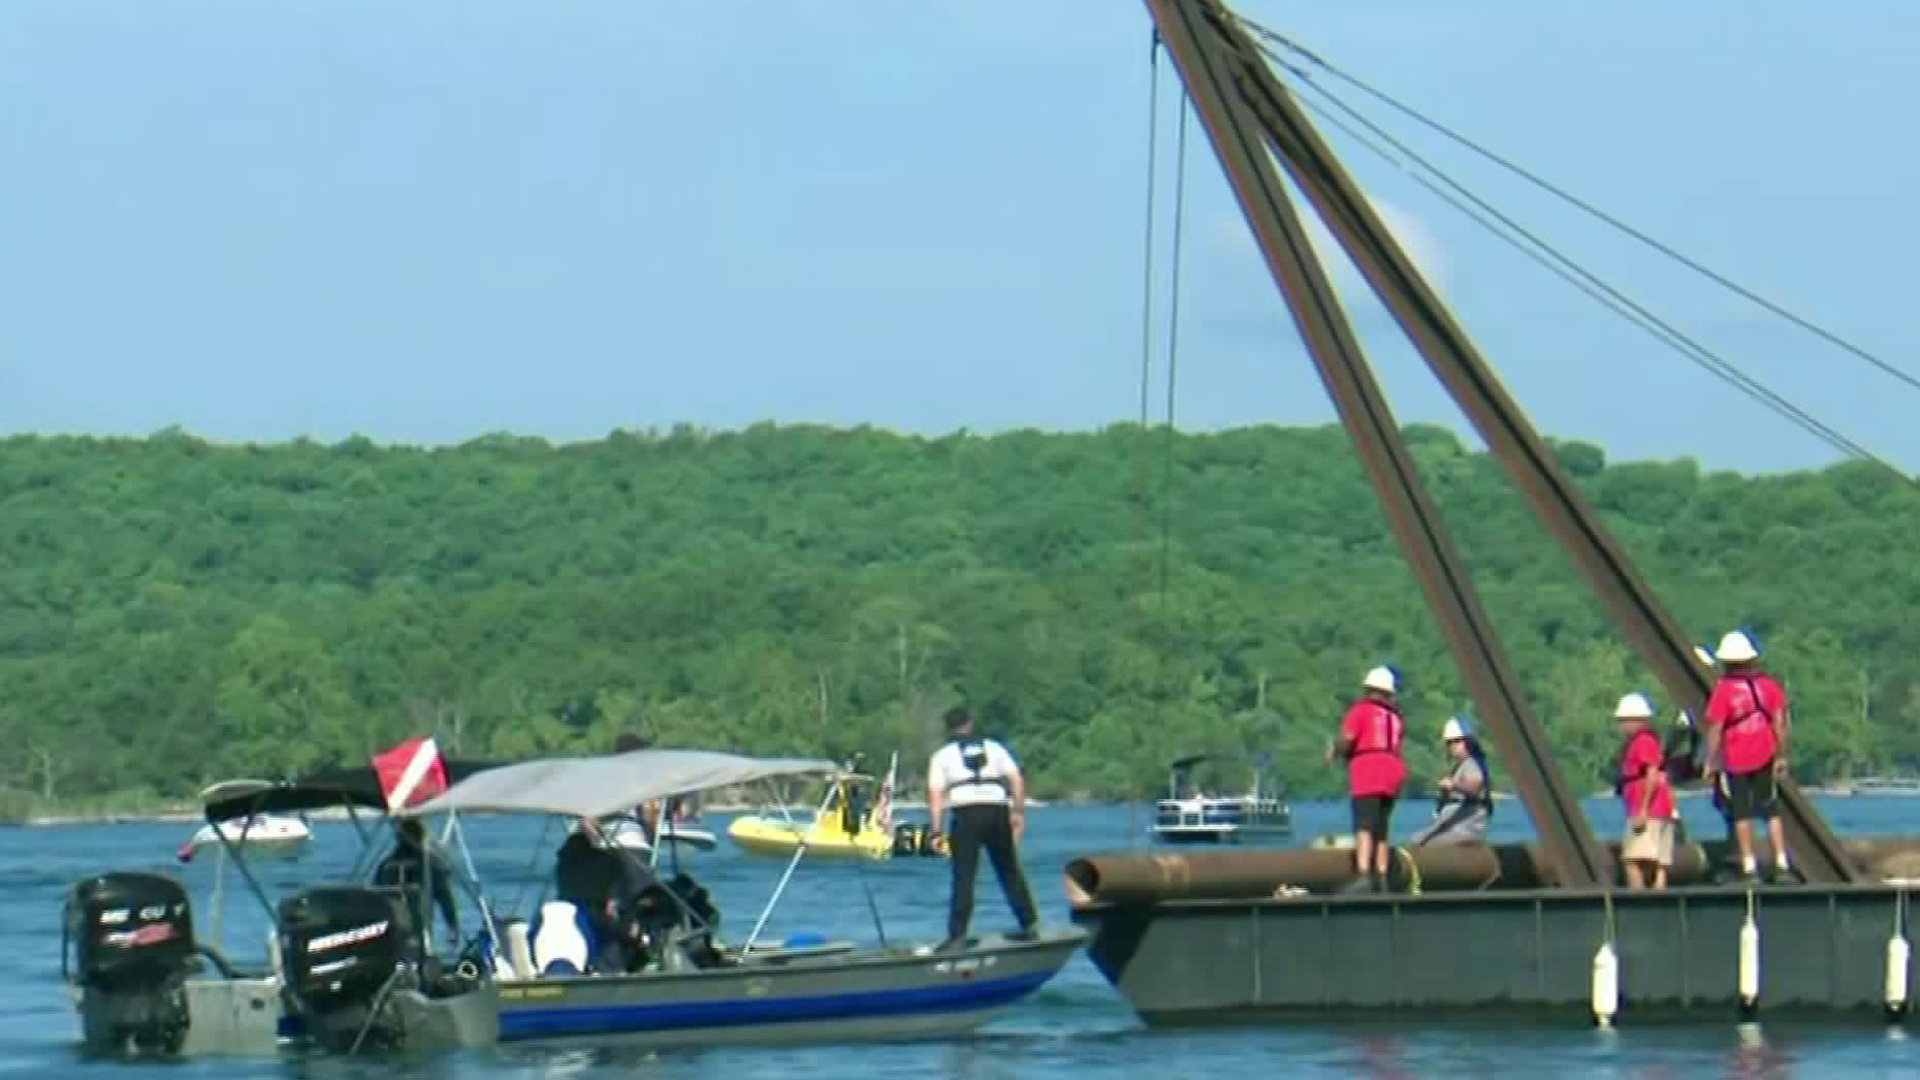 Recovery efforts of a boat that sank in a Missouri lake continued on July 23, 2018. (Credit: CNN)